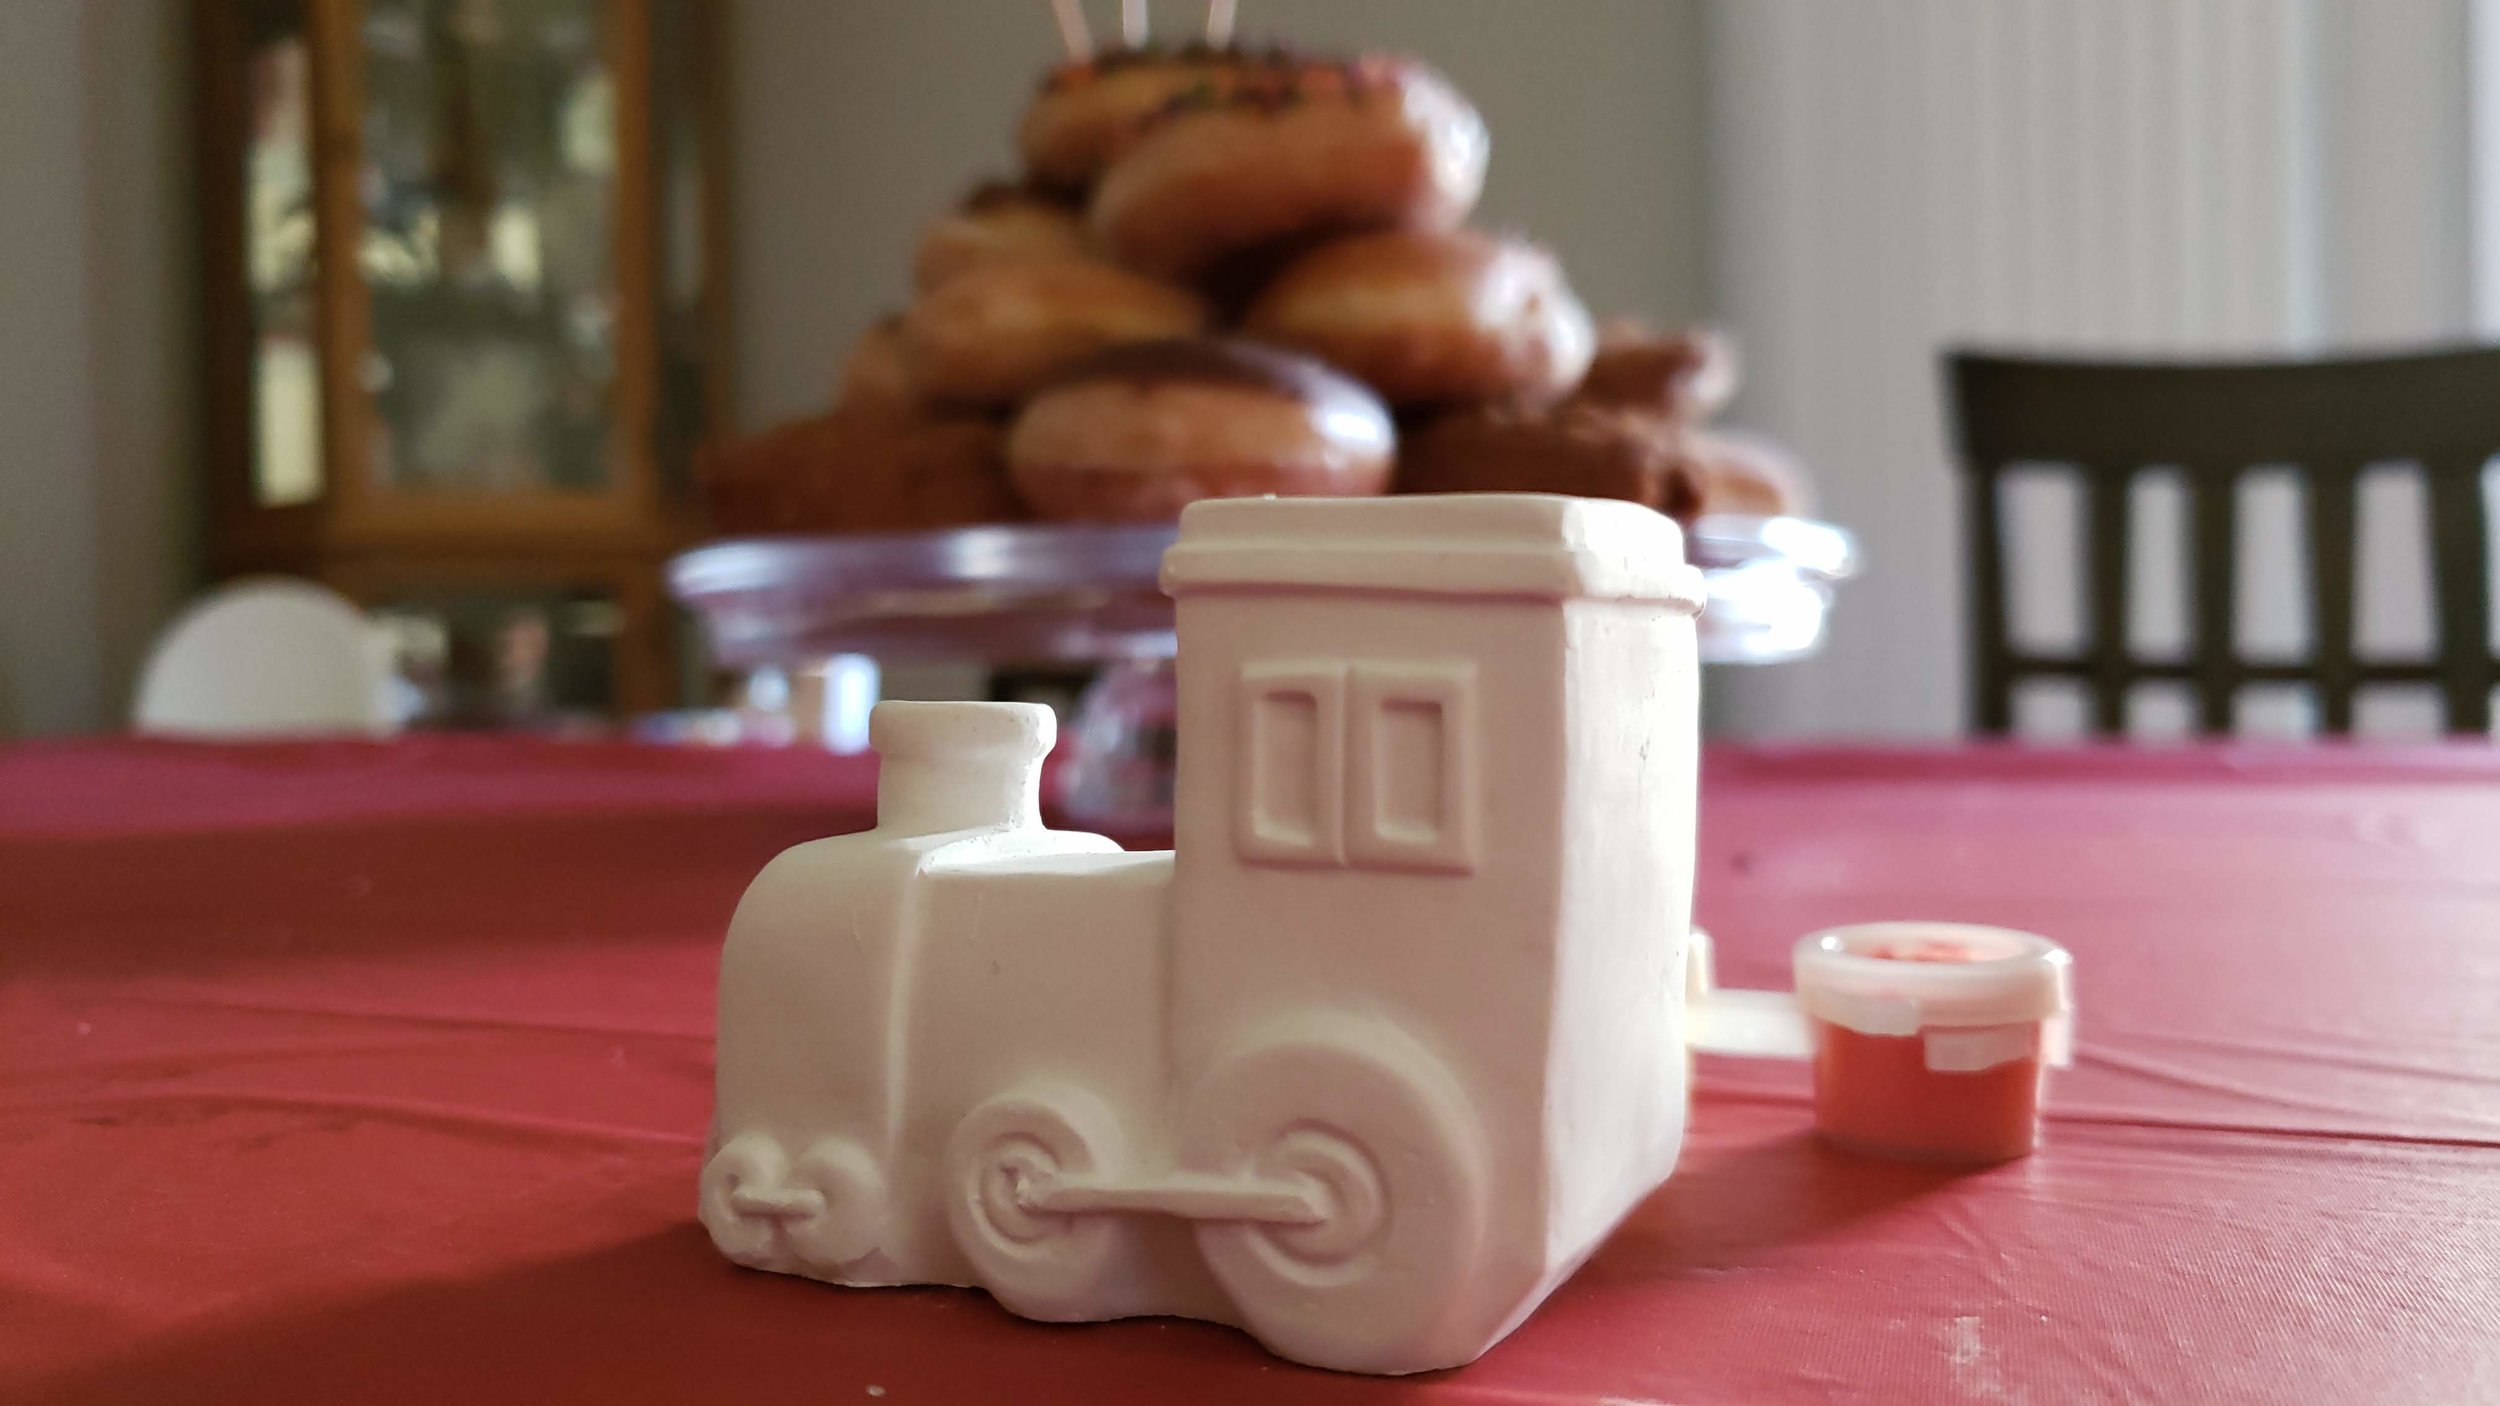 """Since my two-year-old is obsessed with trains, we called it a """"Chugga Chugga Two Two"""" party and gave each guest a Dollar Tree craft and then screened a Thomas the Train movie downstairs."""